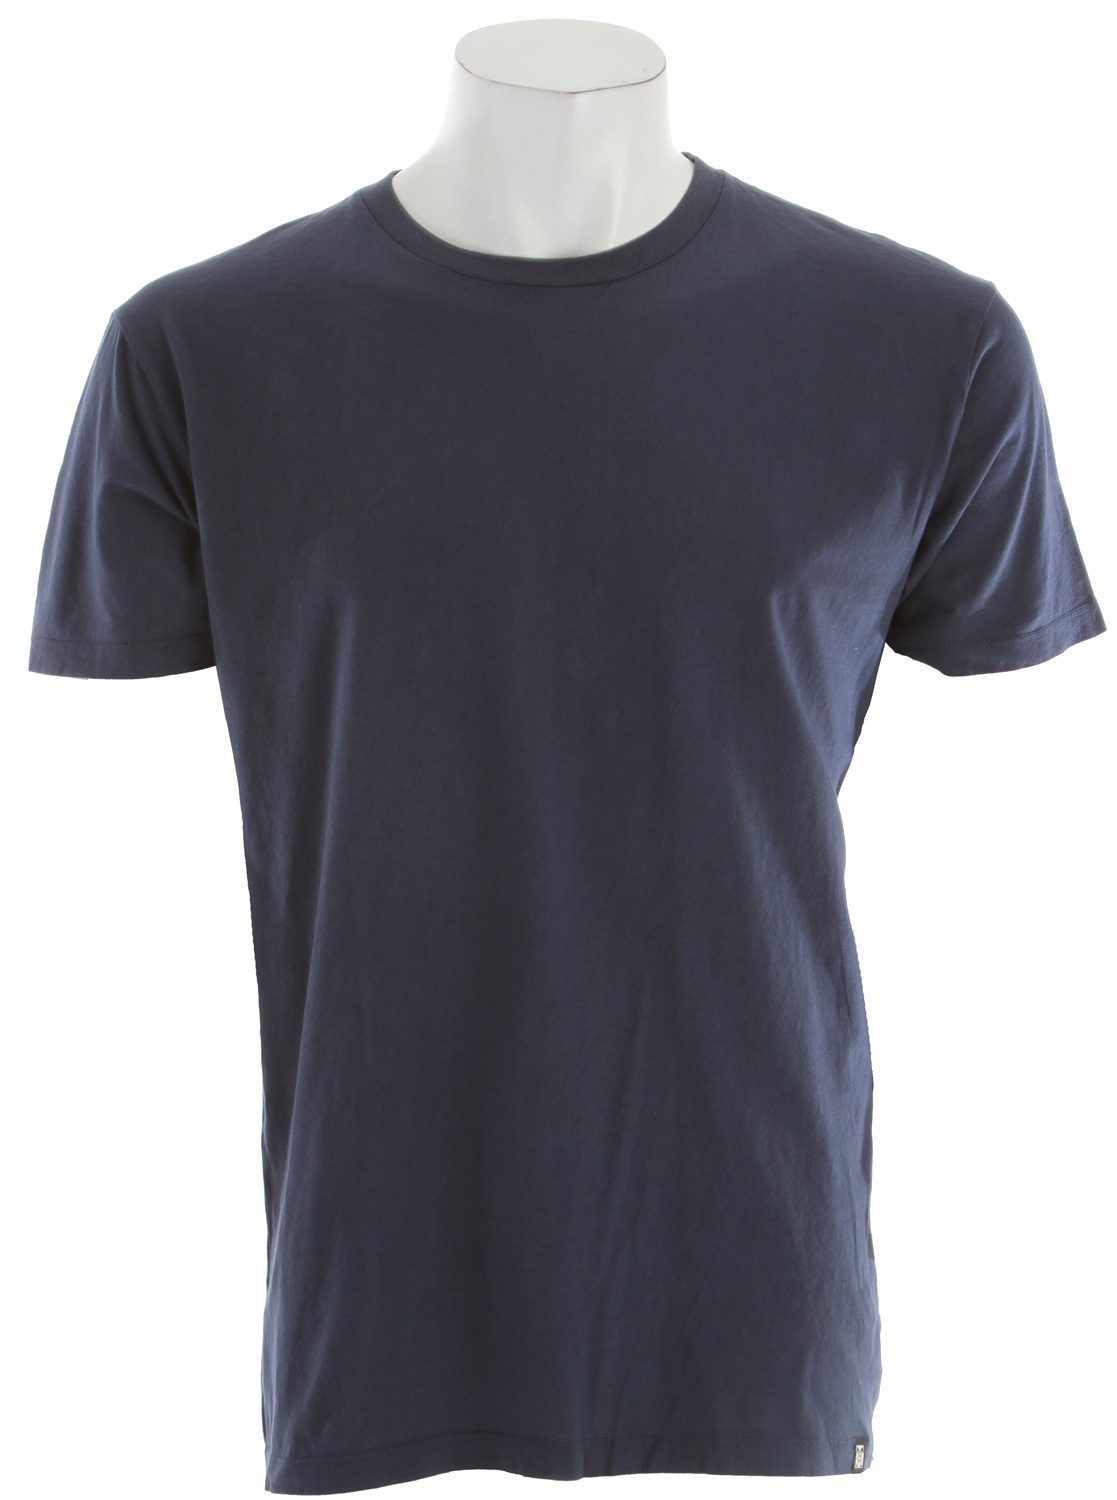 Key Features of The Obey Thrift Blanks T-Shirt:  Slim Fit  Crew Neck  Short Sleeve  Extra lightweight, with inset crew neck  100% cotton - $10.95